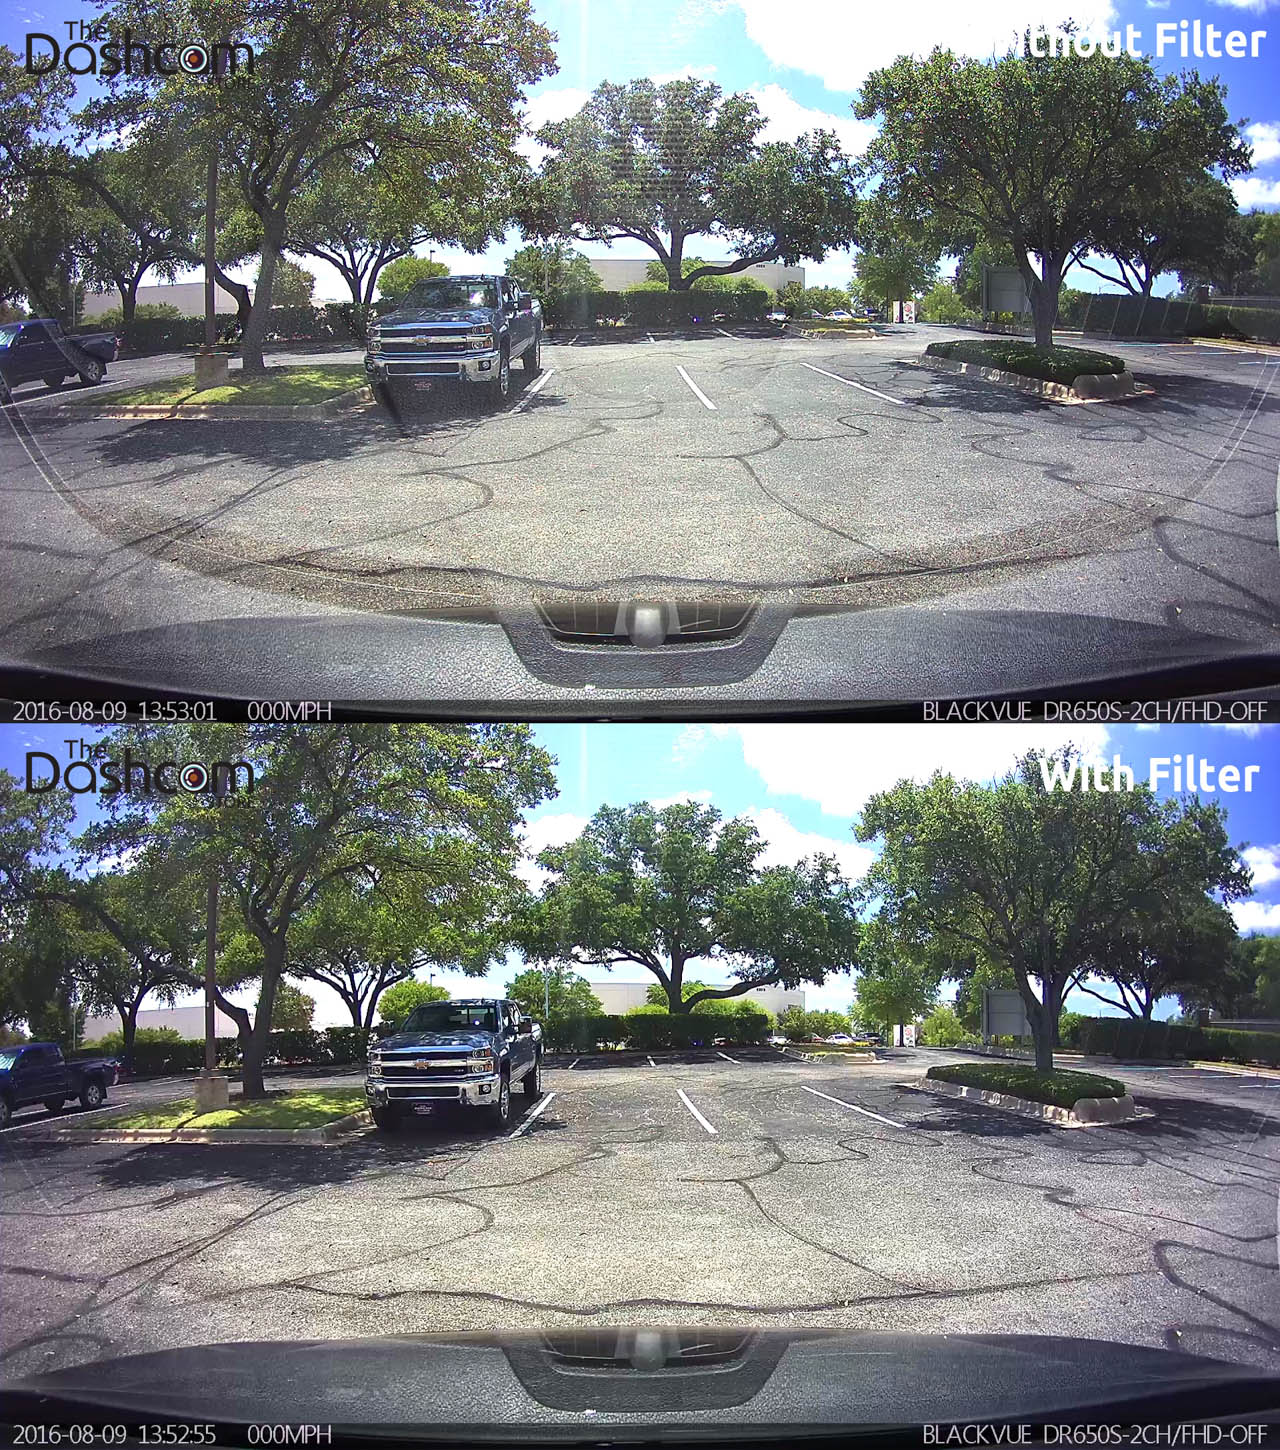 Polarizing Filters For Blackvue And Thinkware Dash Cams